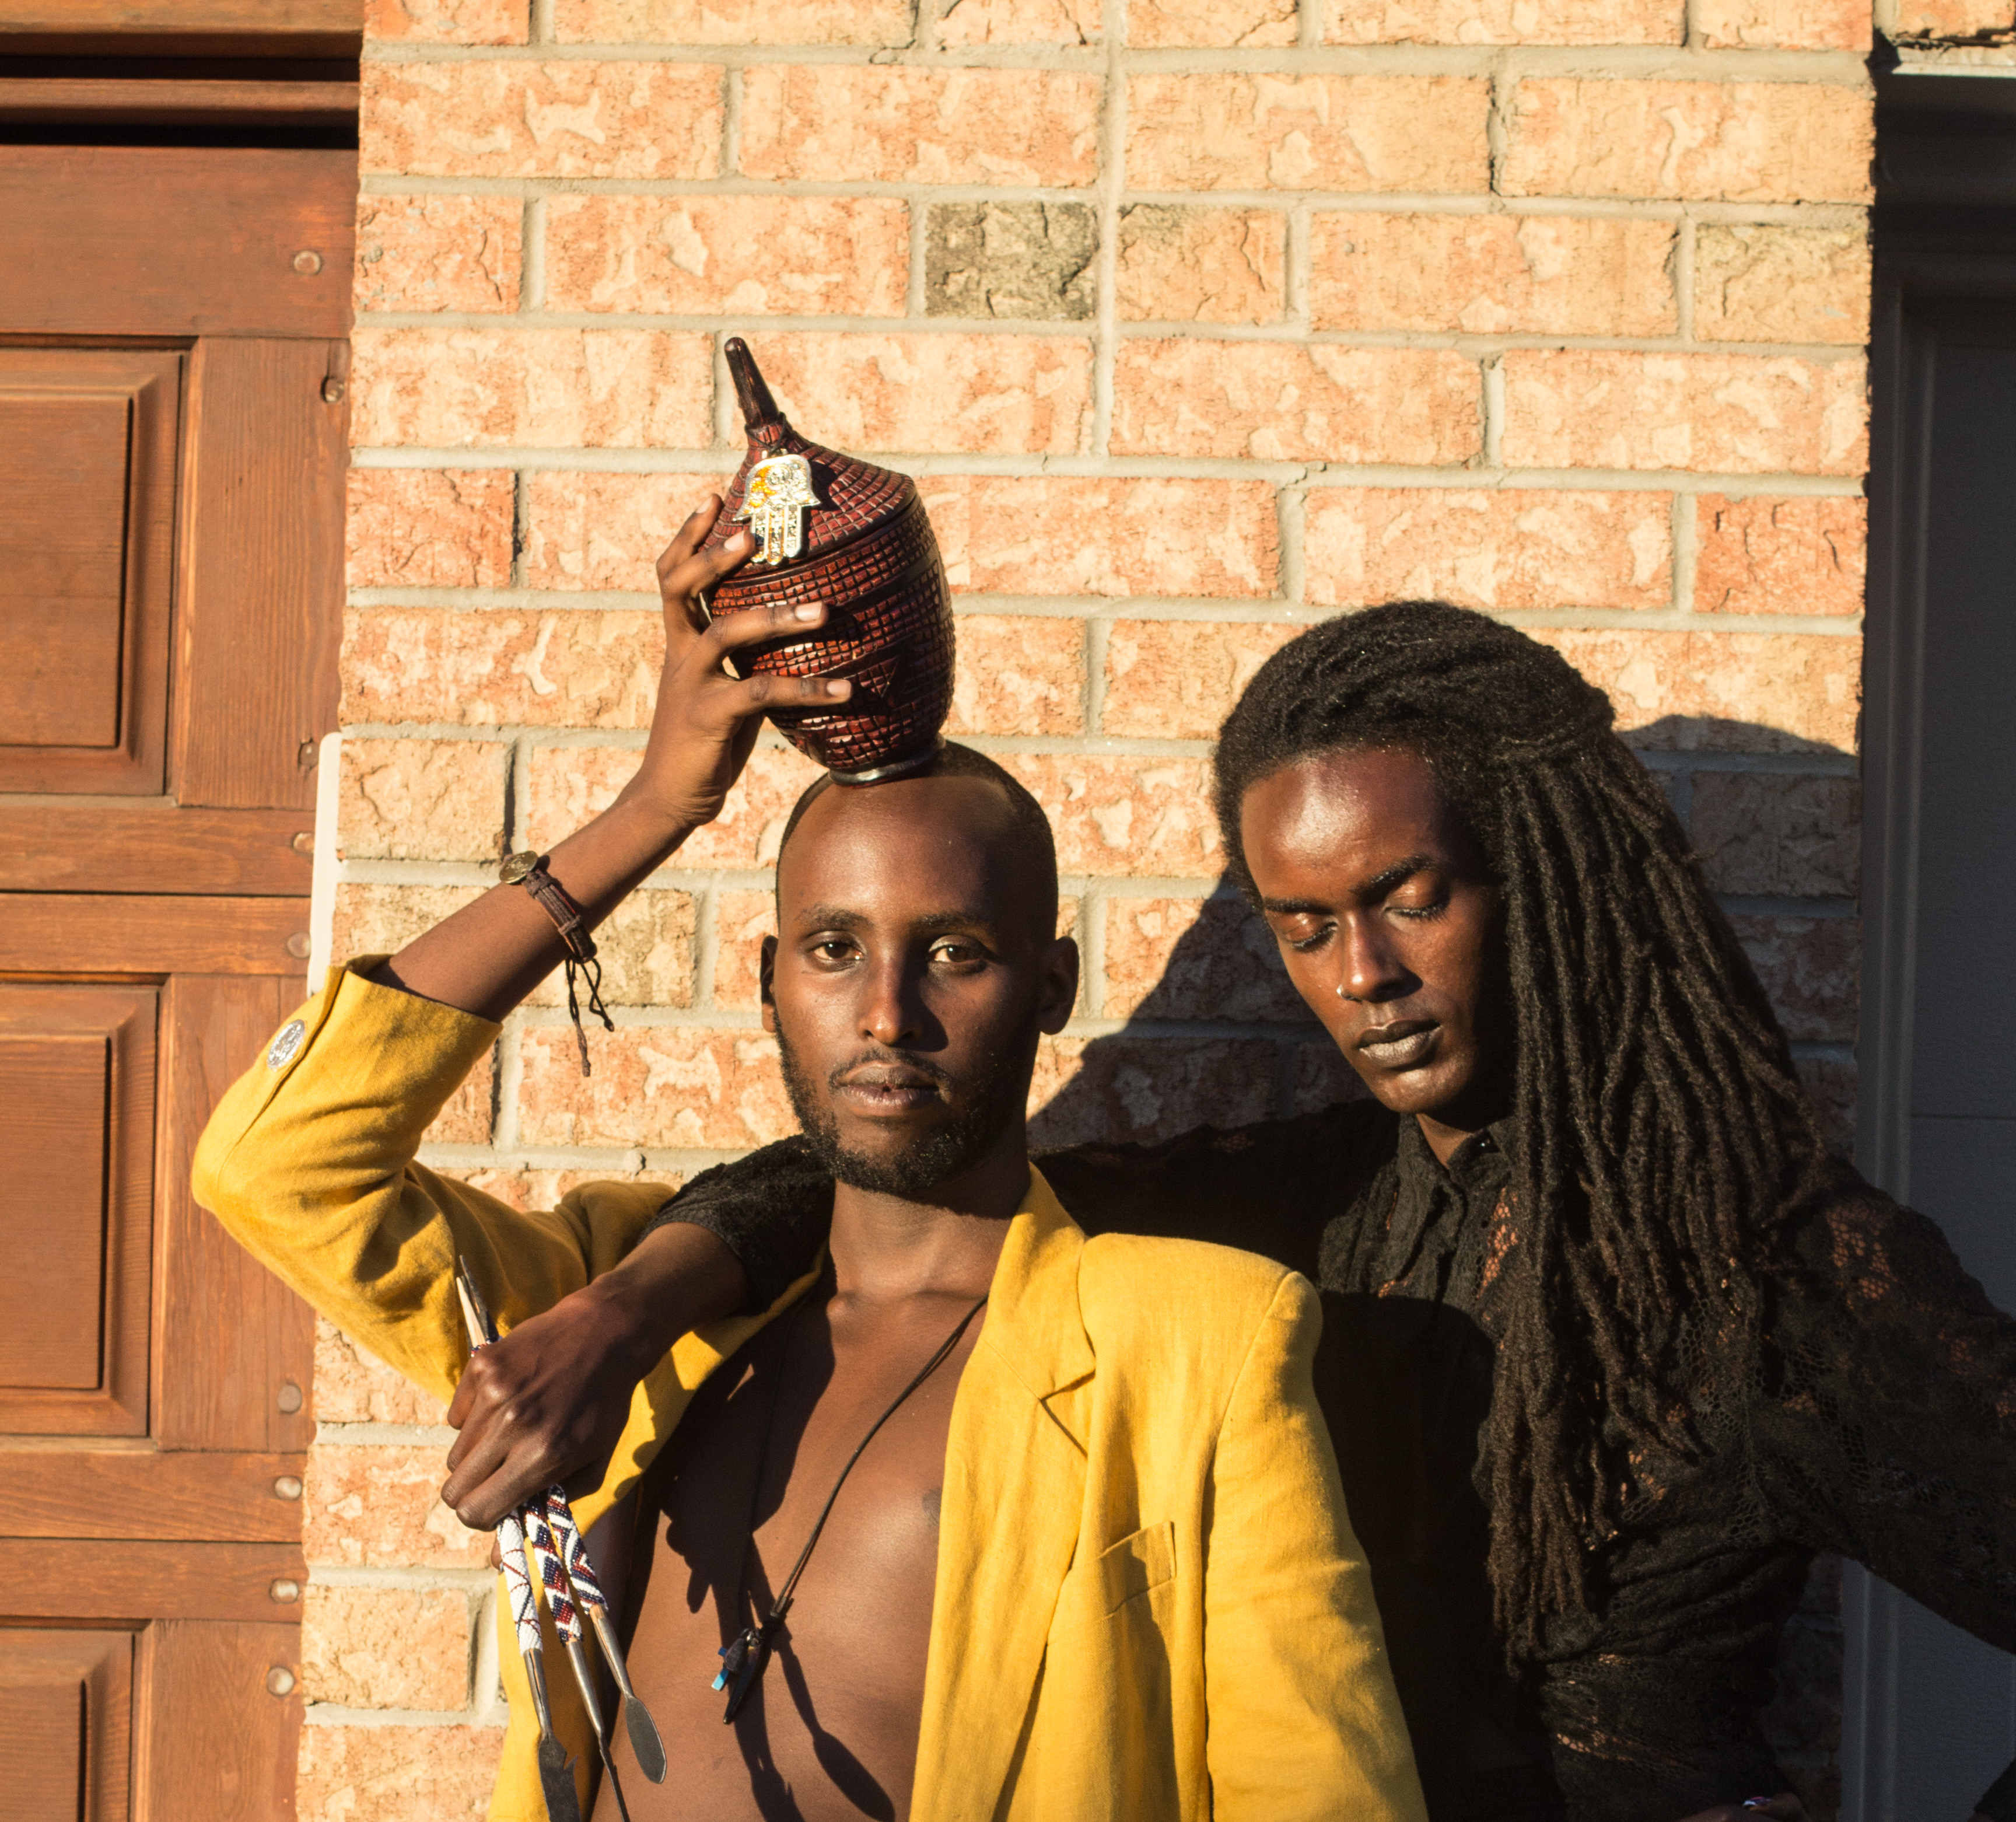 Mikael Owunna's photography documentary series Limitless captures the identity of queer Africans